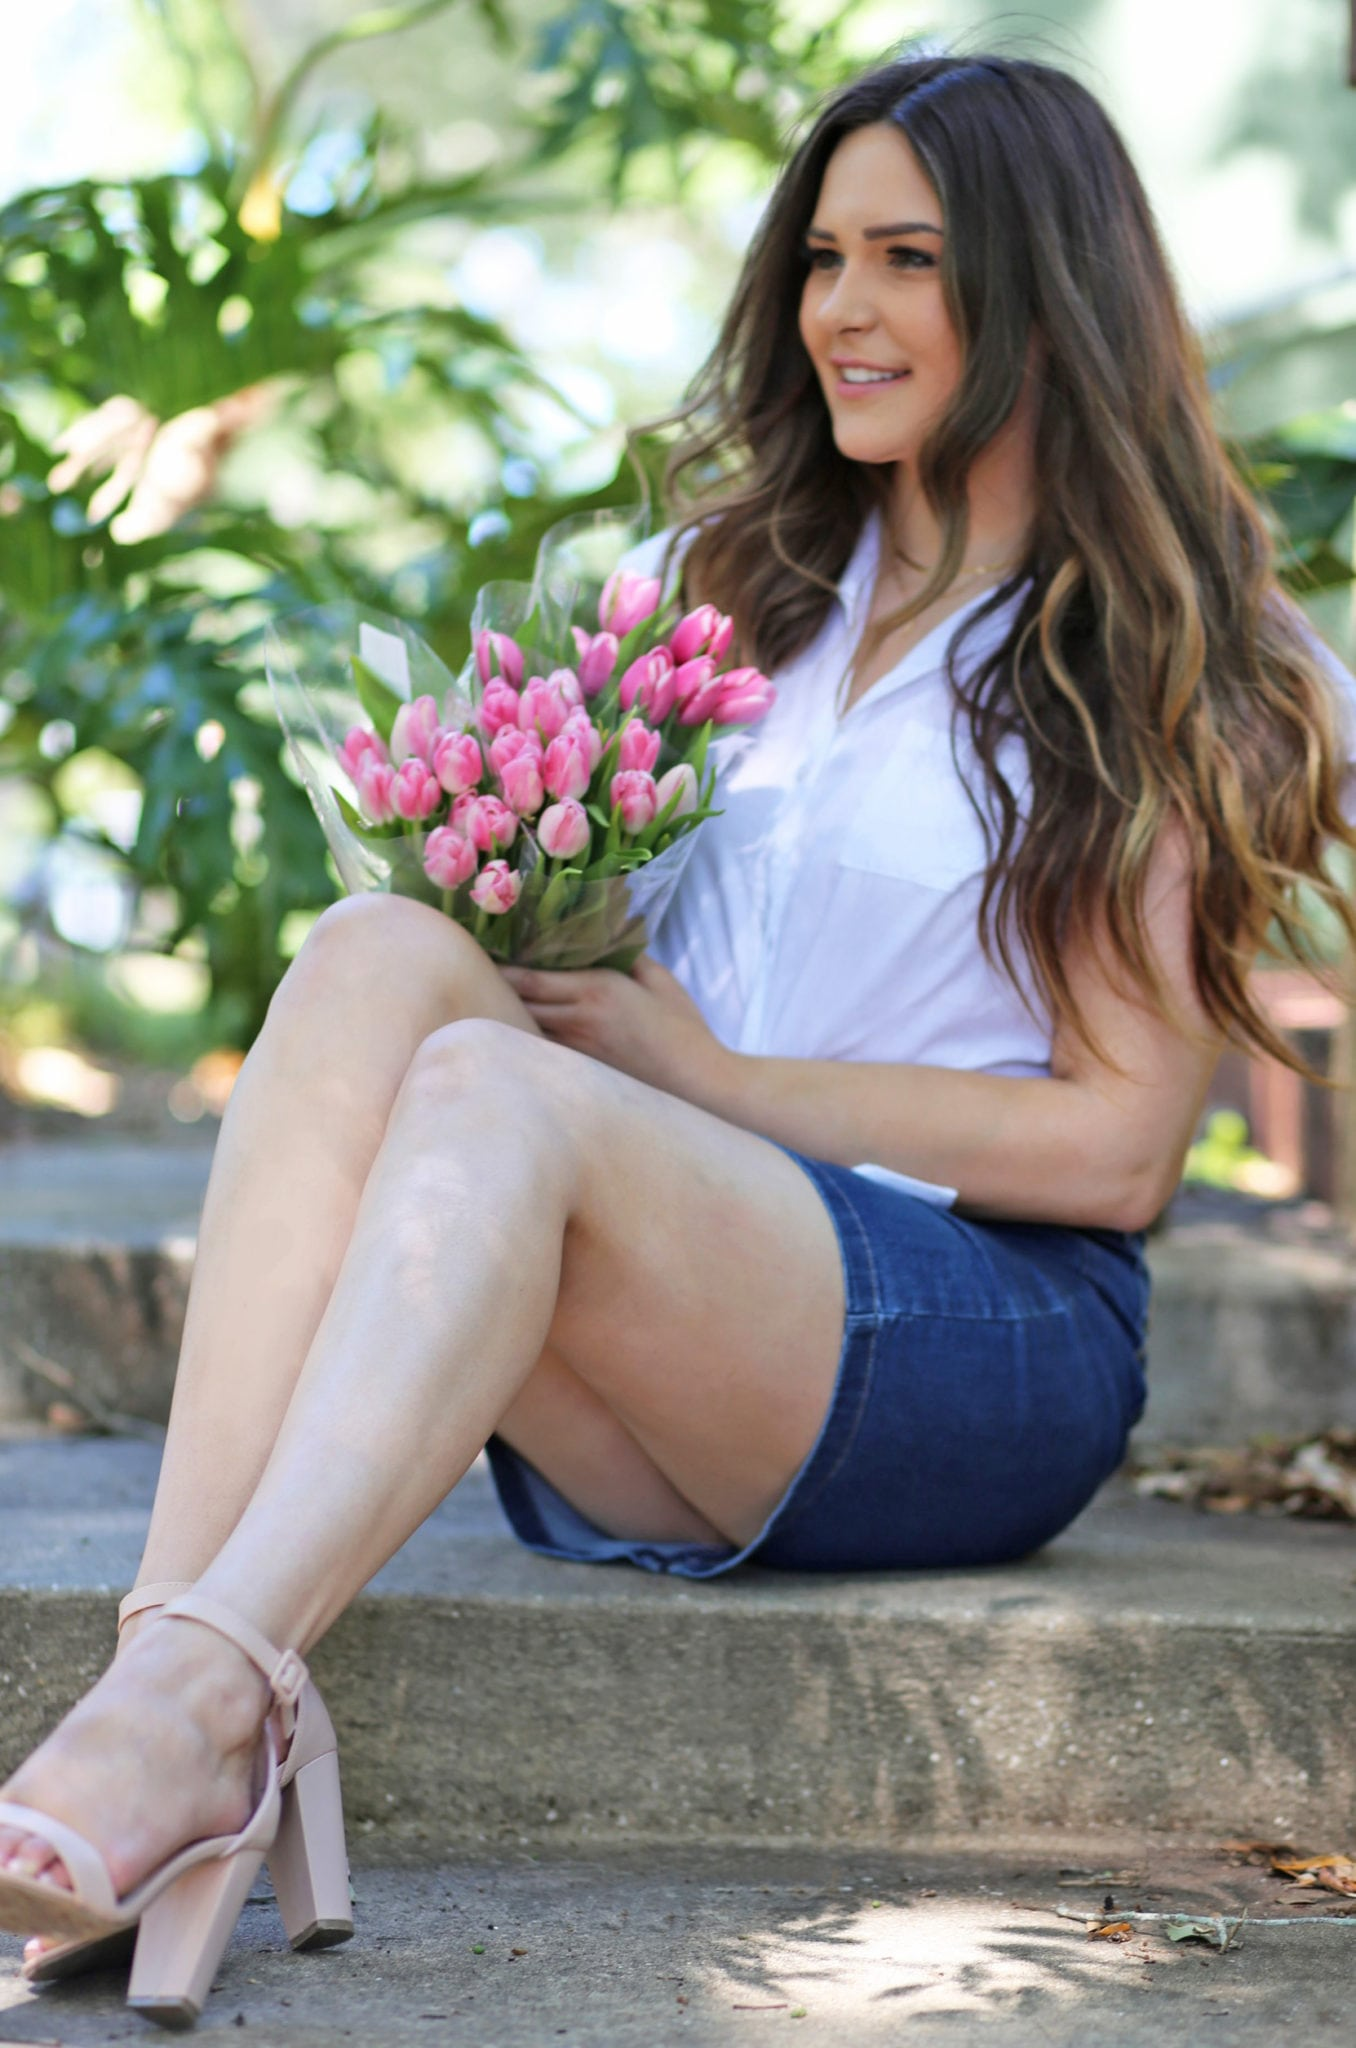 Beauty blogger Mash Elle how to style a denim skirt outfit tulips white top Florida spring fashion